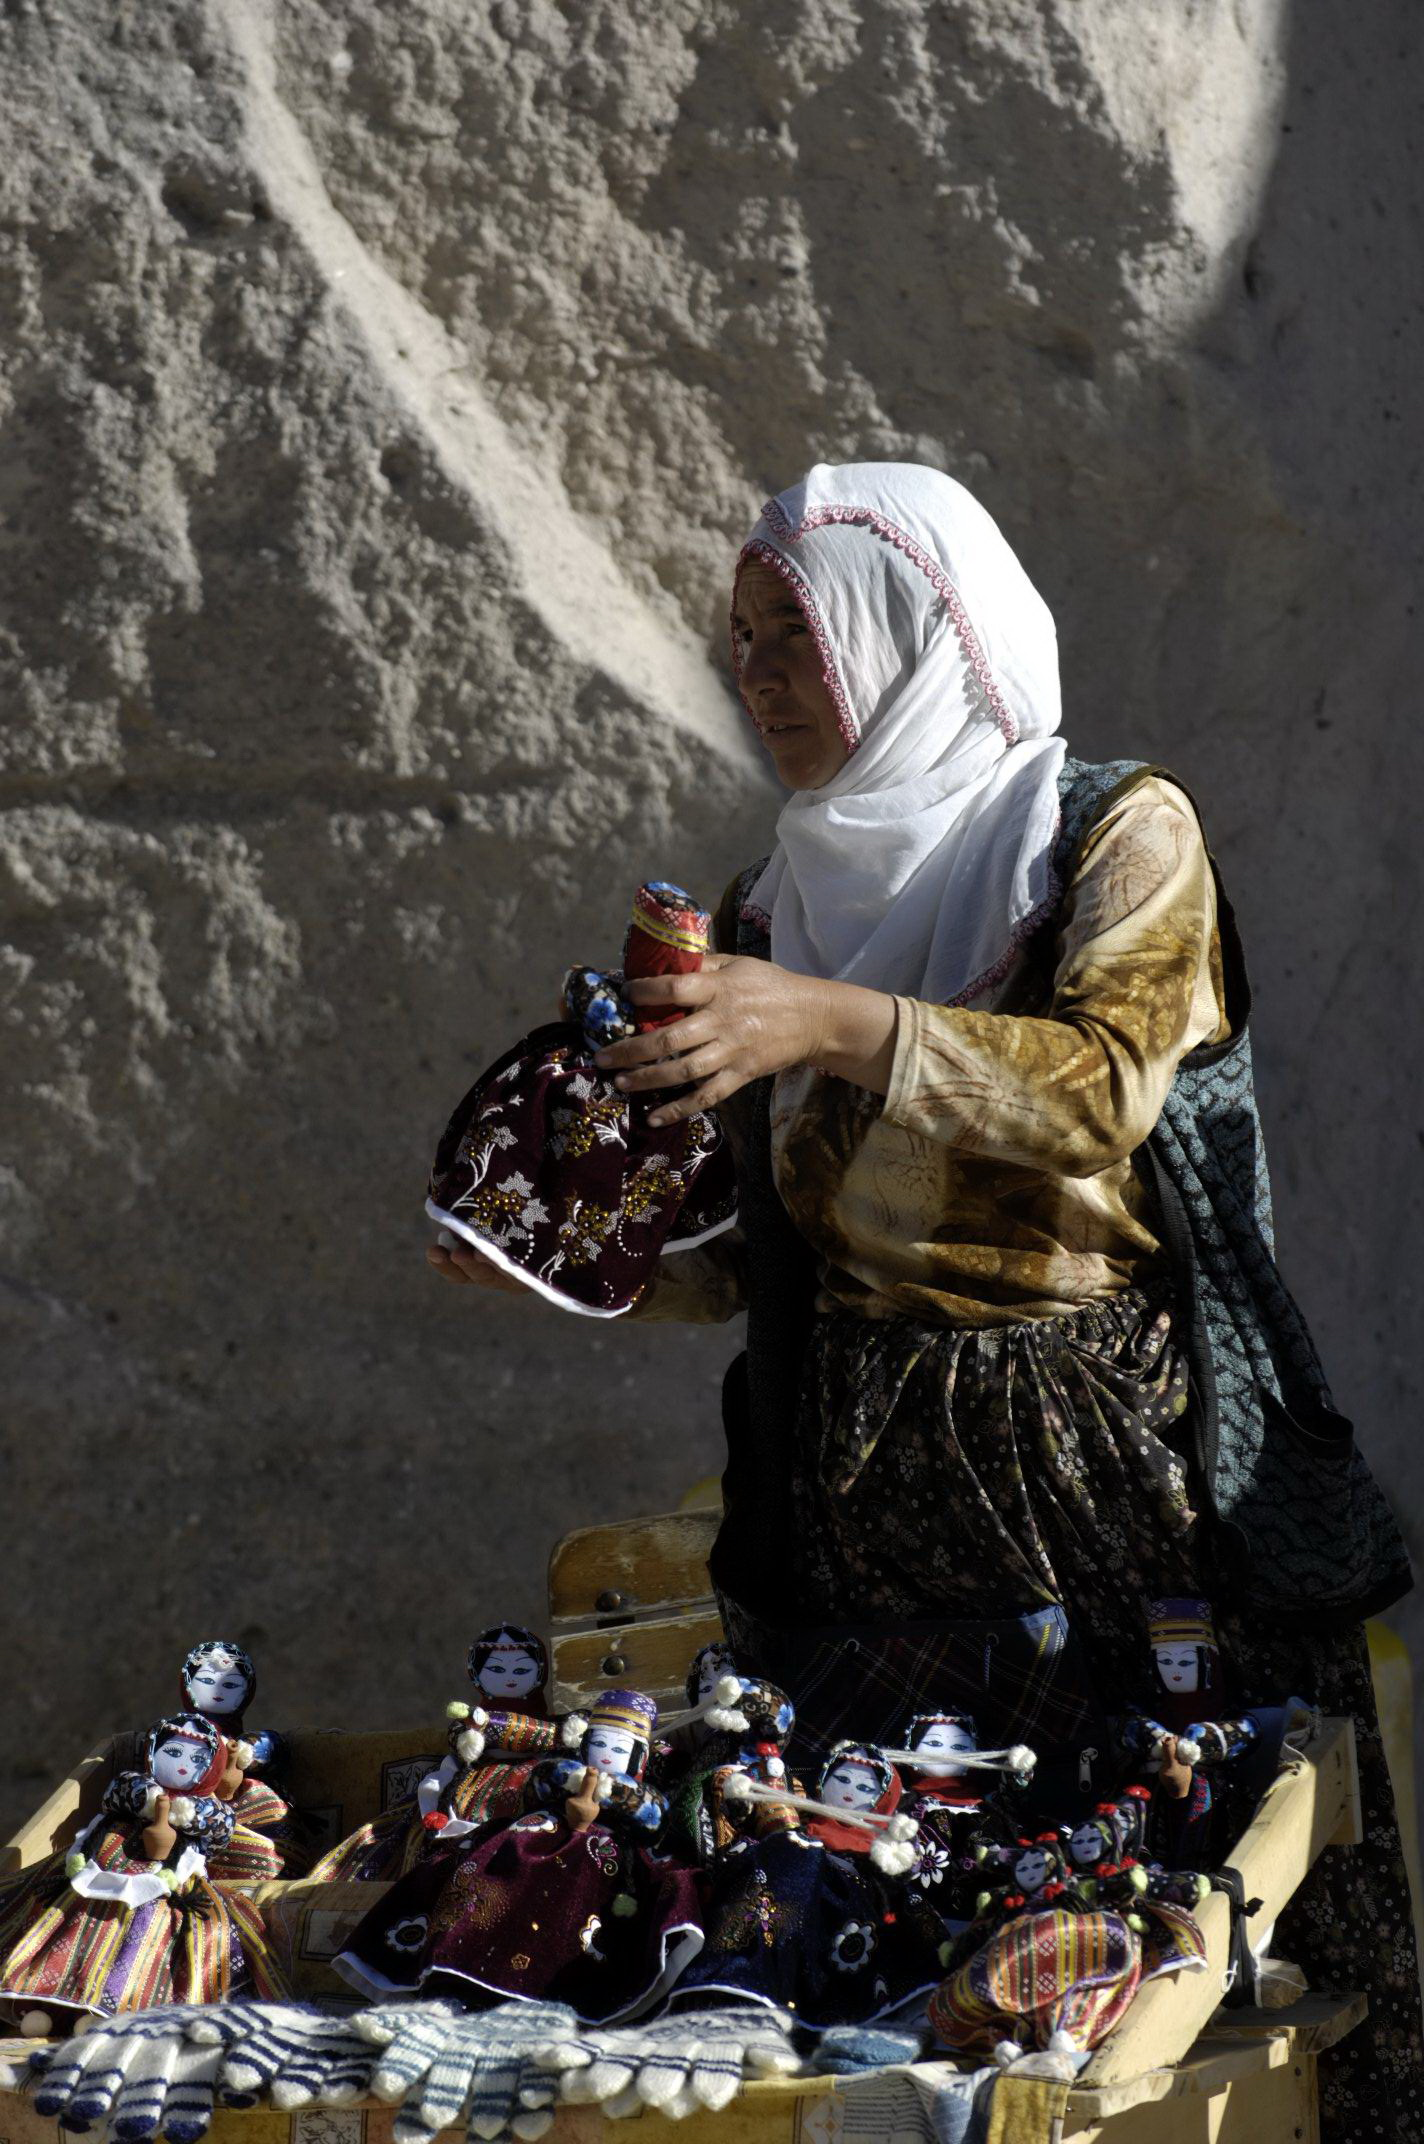 cappadocia woman selling handmade dolls A Hidden Side of Turkeys Cappadocia: How to Go Where Others Dont